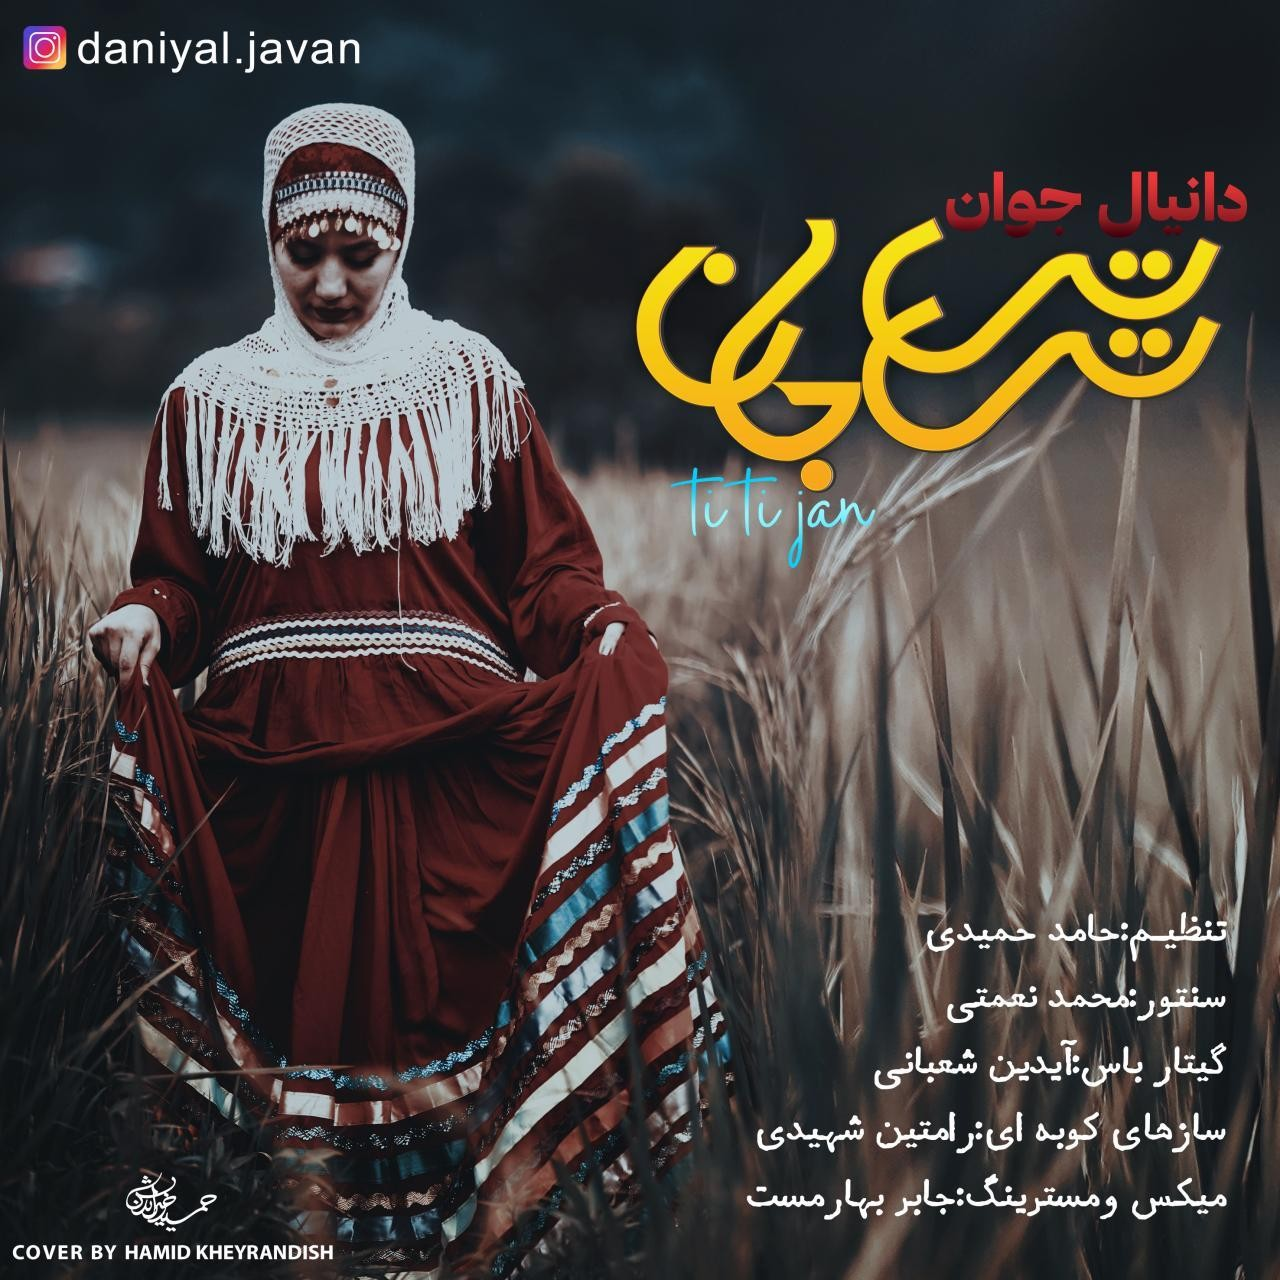 Daniyal javan – Titi jan